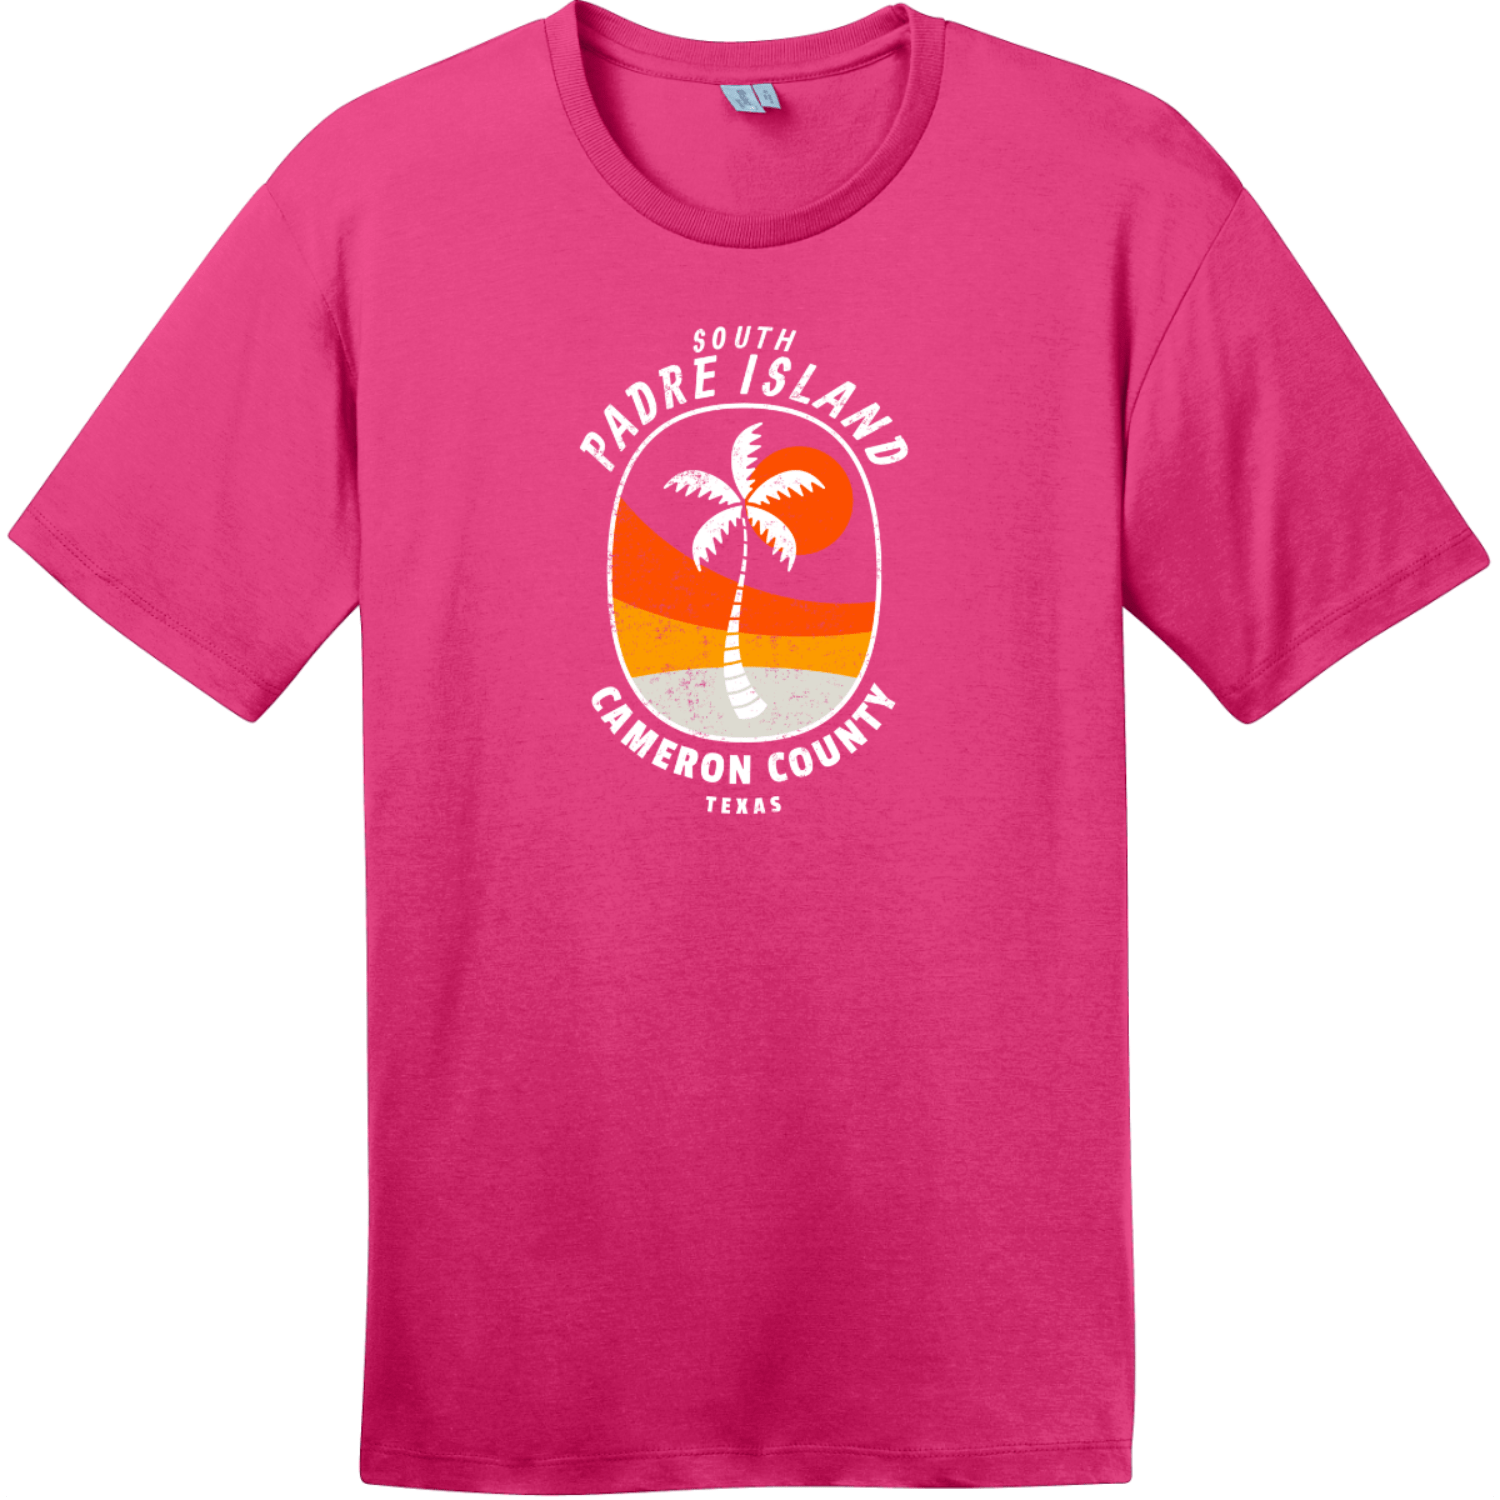 South Padre Island Texas Palm Tree T-Shirt Dark Fuchsia District Perfect Weight Tee DT104